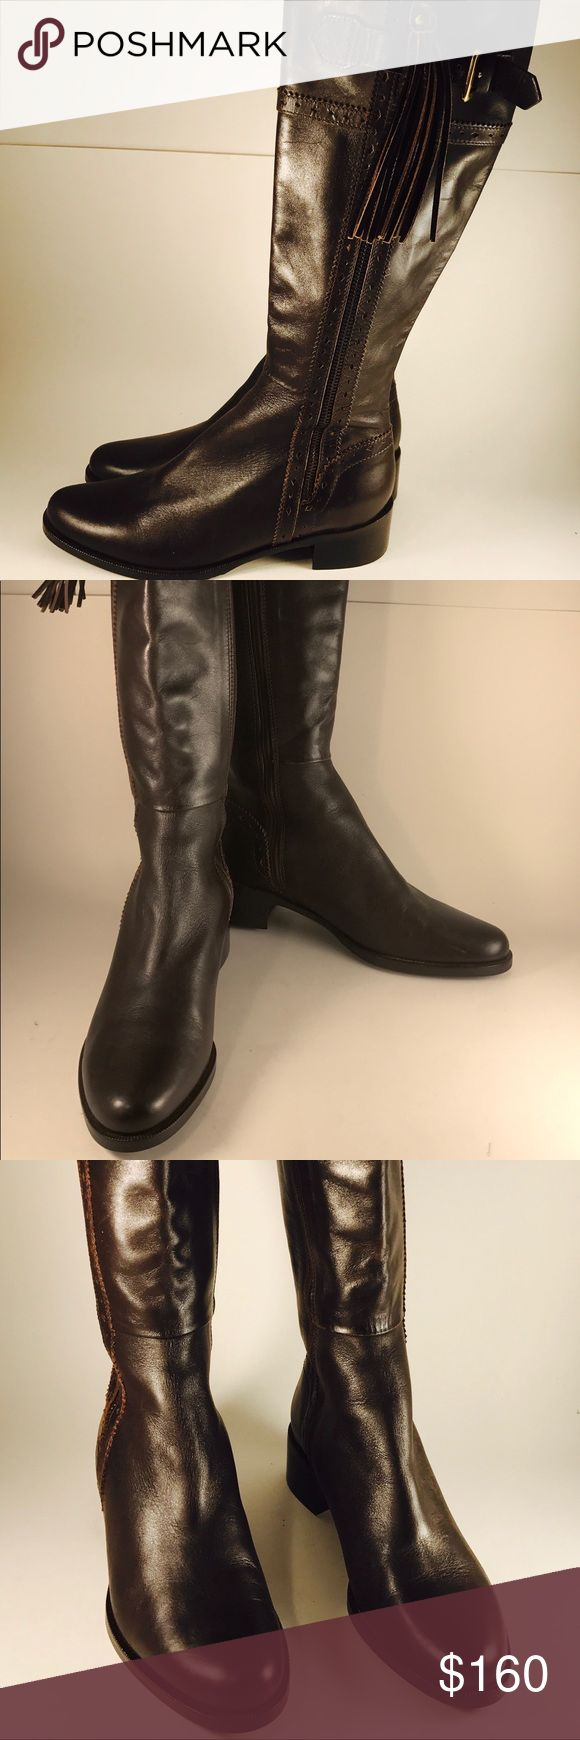 "L.K Bennett London Brown Classic Riding Boots L.K Bennett London Classic Brown Leather Riding Boots w leather Tassel and double zipper on both sides   Size35.5  Height 16"" Heel 1.5 Circumference shaft 13.5  Toe to heel 10"" Width 3.5 LK Bennett Shoes Winter & Rain Boots"